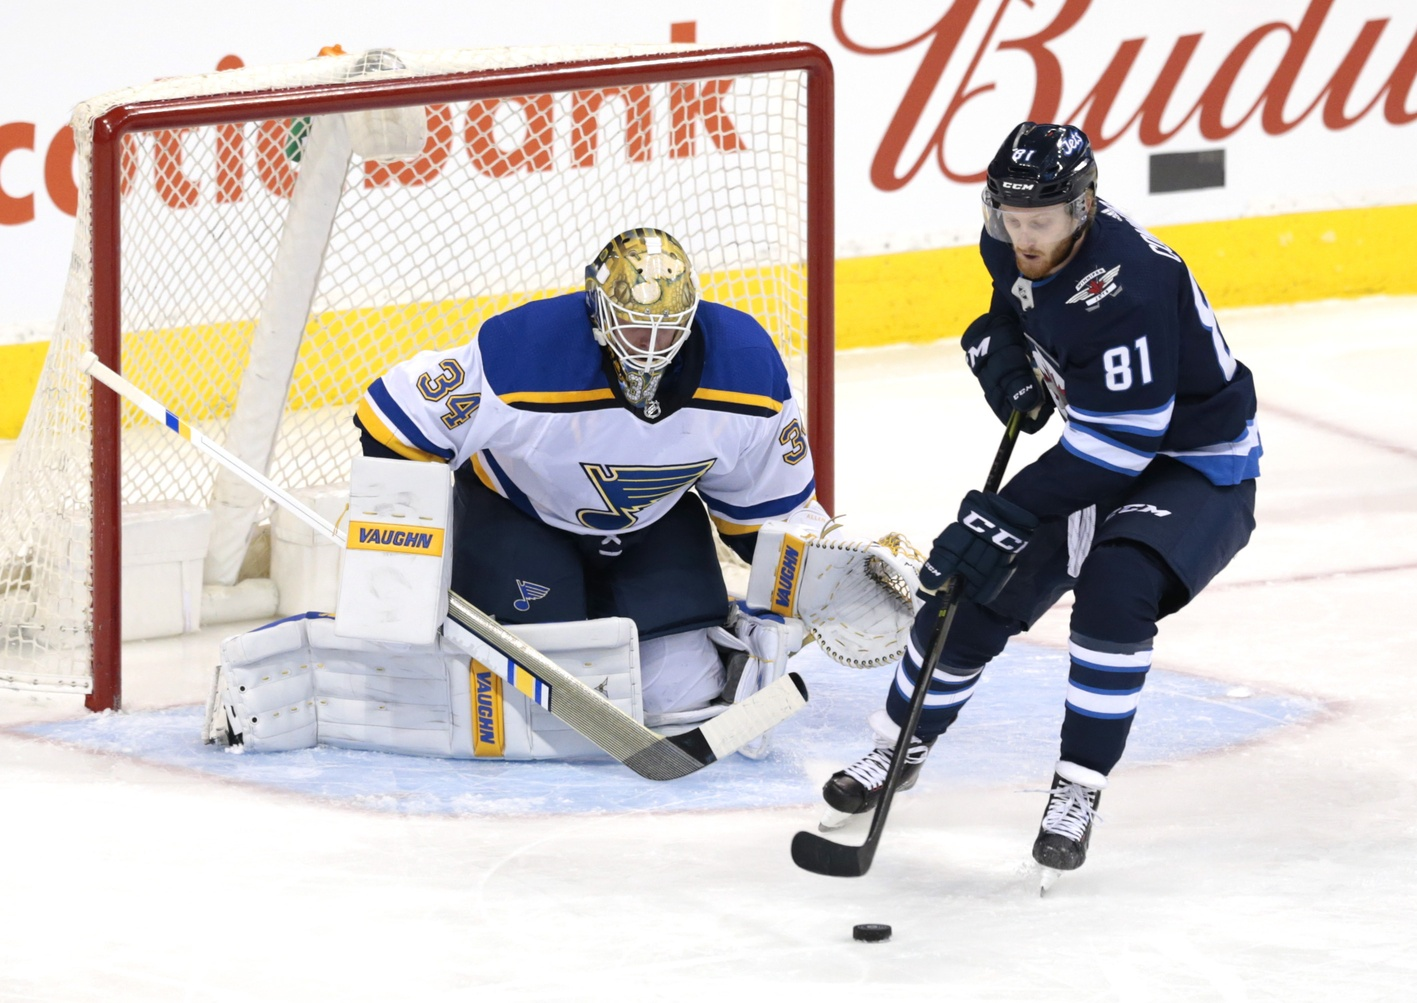 Jake Allen now has the third-most wins in Blues history